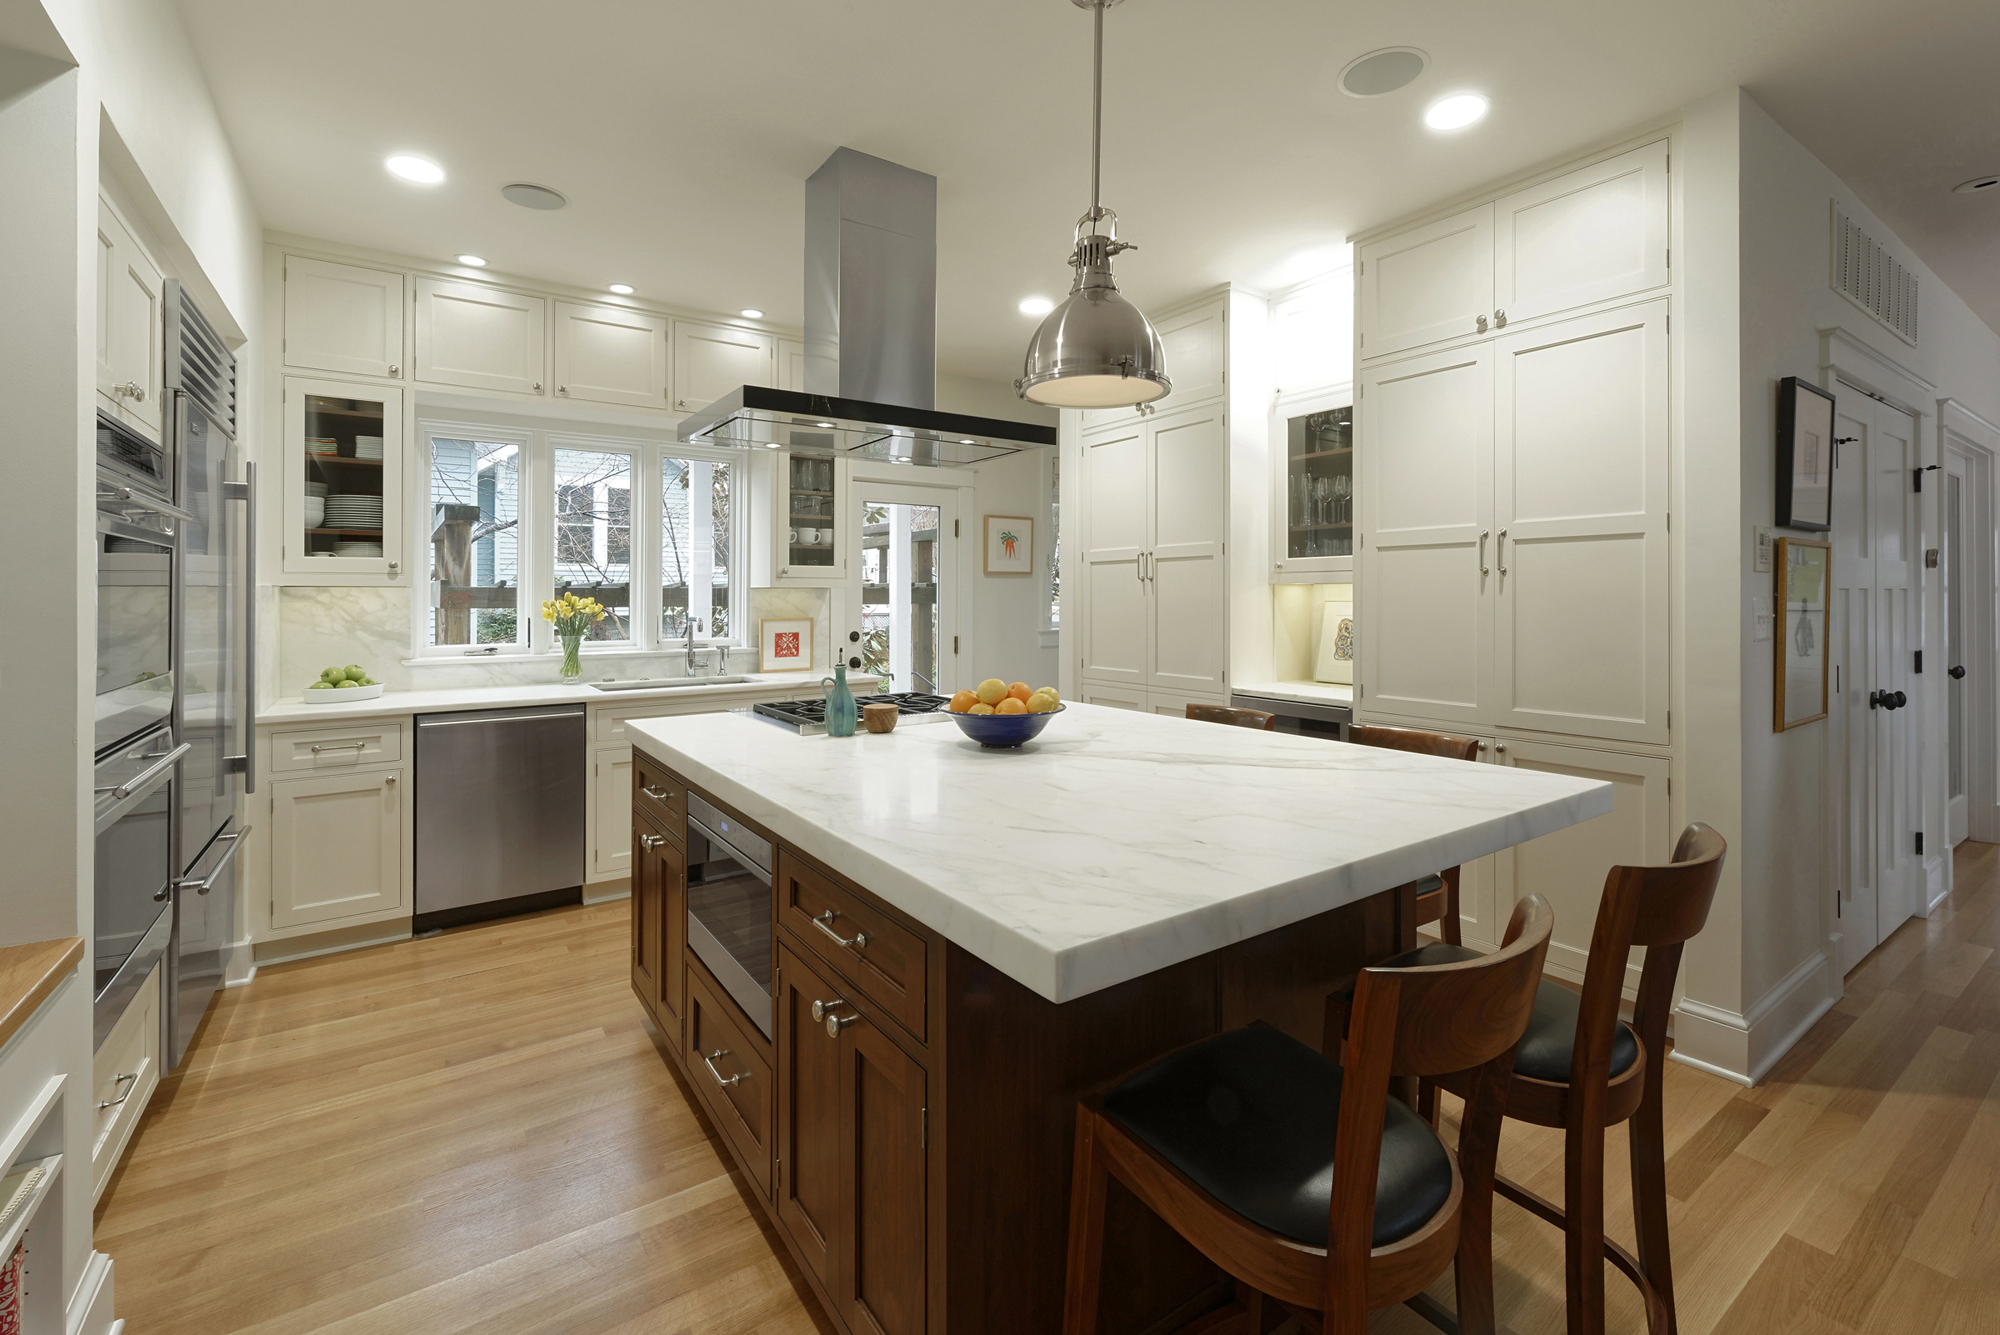 Stylish First-Floor Bungalow Renovation in Arlington, VA | BOWA on bungalow attic remodel, modern kitchen renovation, tudor kitchen renovation, bungalow bathroom, deck house kitchen renovation, bungalow renovations before and after, vintage kitchen renovation, rustic kitchen renovation, 1930s bungalow renovation, semi kitchen renovation, 1930 kitchen renovation, ranch kitchen renovation, bungalow renovation ideas, bungalow style dining room, bungalow bedroom, home kitchen renovation, bungalow house renovation, bungalow basement renovation, farmhouse kitchen renovation, bungalow kitchens 1930,